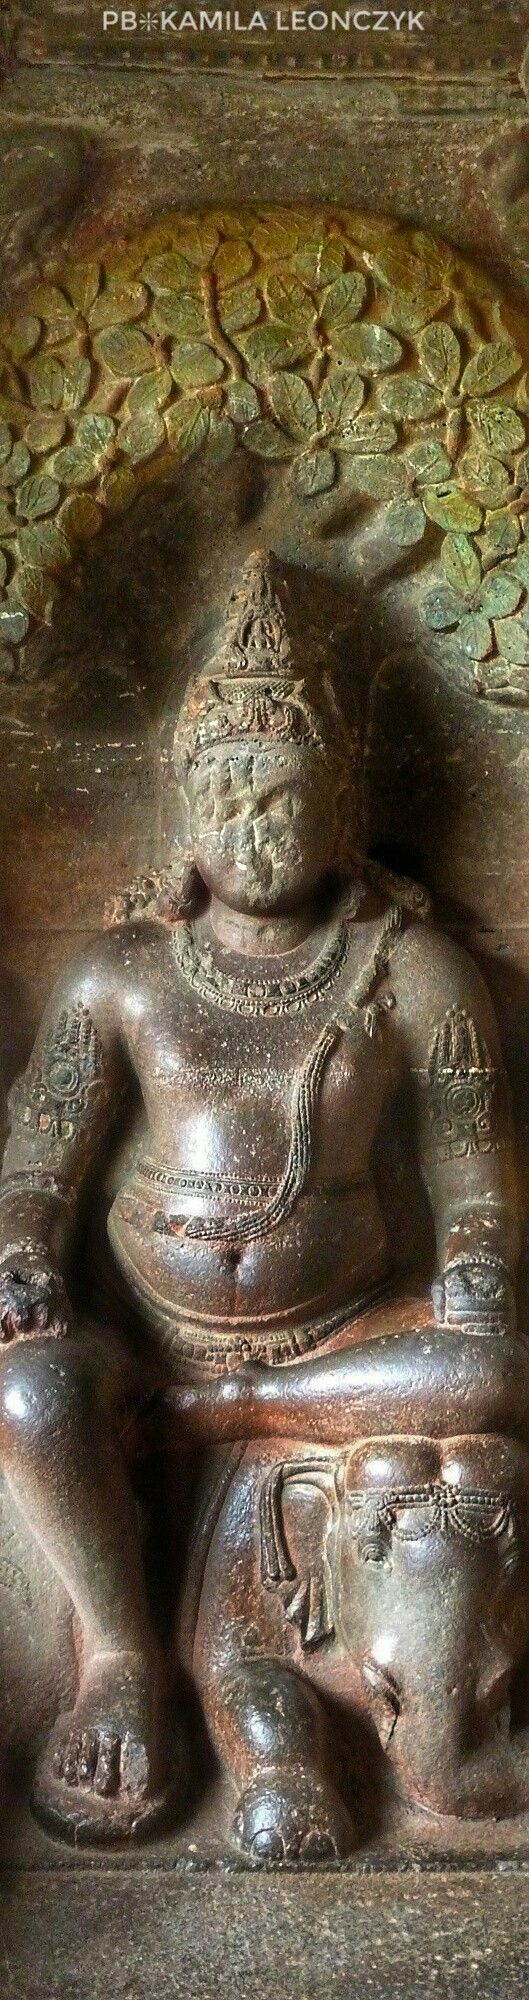 Carvings of the Ajanta and Ellora caves in Maharashtra, India #india #carvings